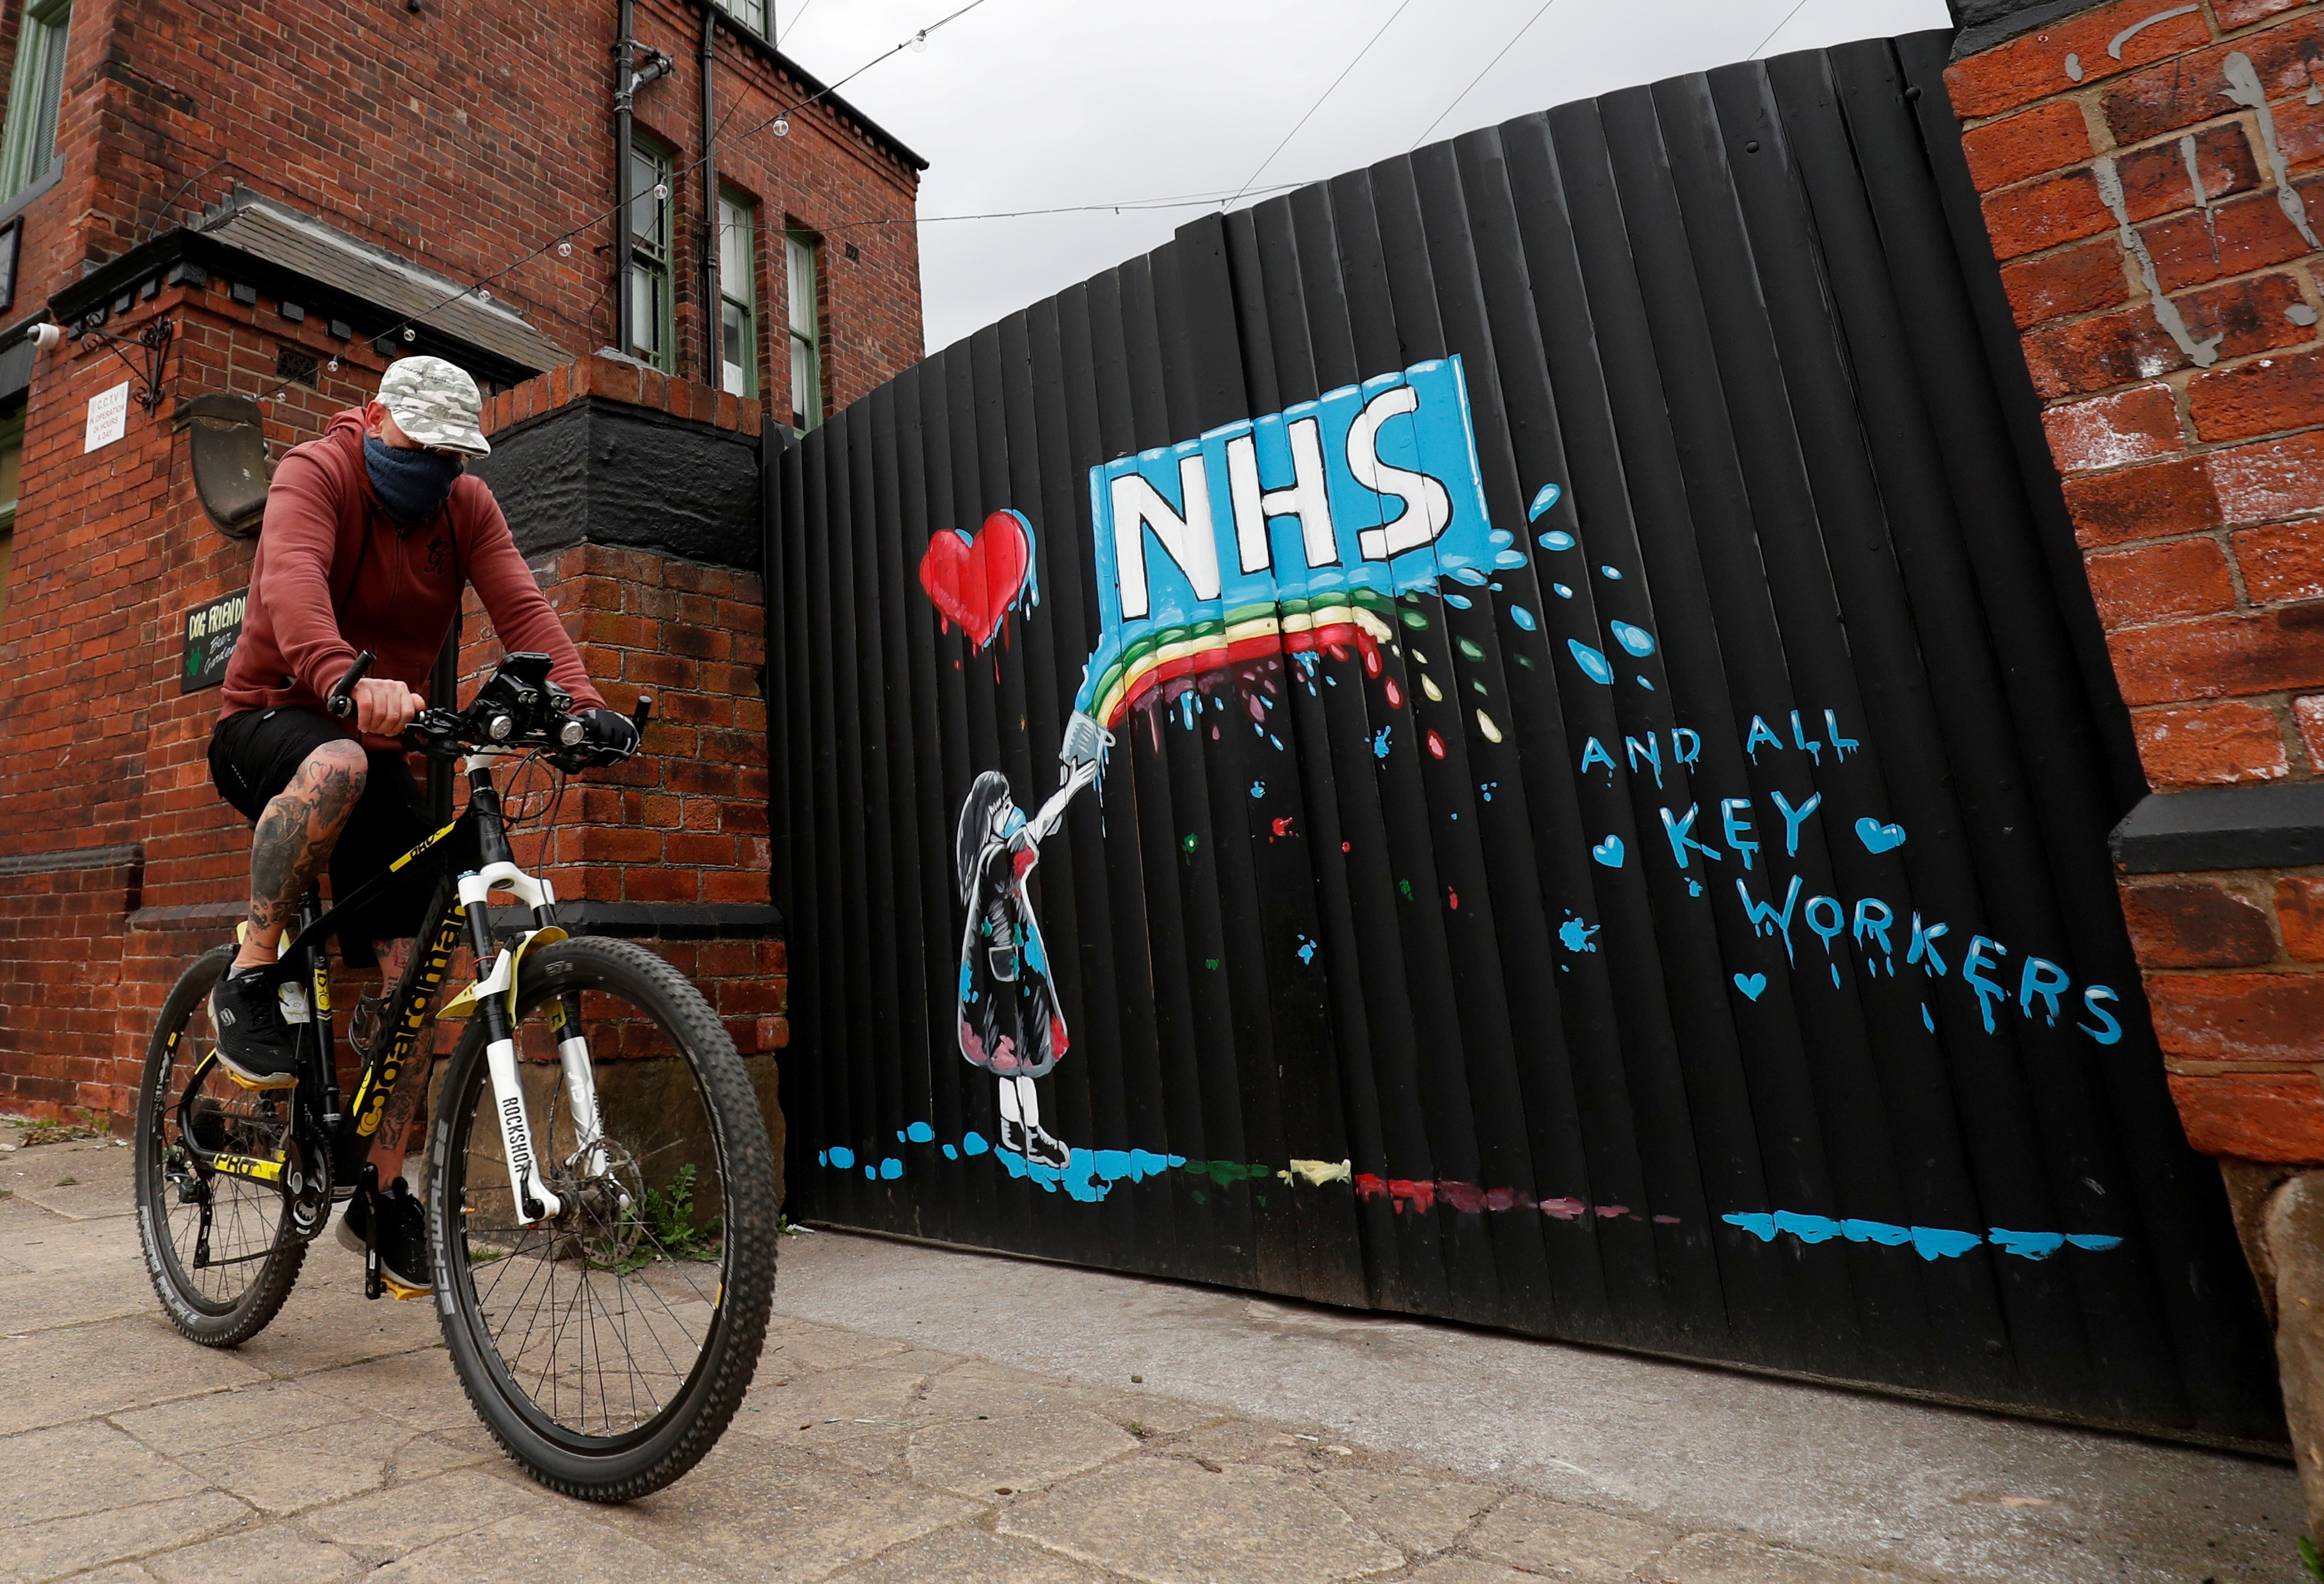 A cyclist rides past a mural in tribute to the NHS painted by artist Rachel List on the gates of Hope & Anchor pub in Pontefract, as the spread of the coronavirus disease (COVID-19) continues, Pontefract, Britain, April 4, 2020. REUTERS/Lee Smith